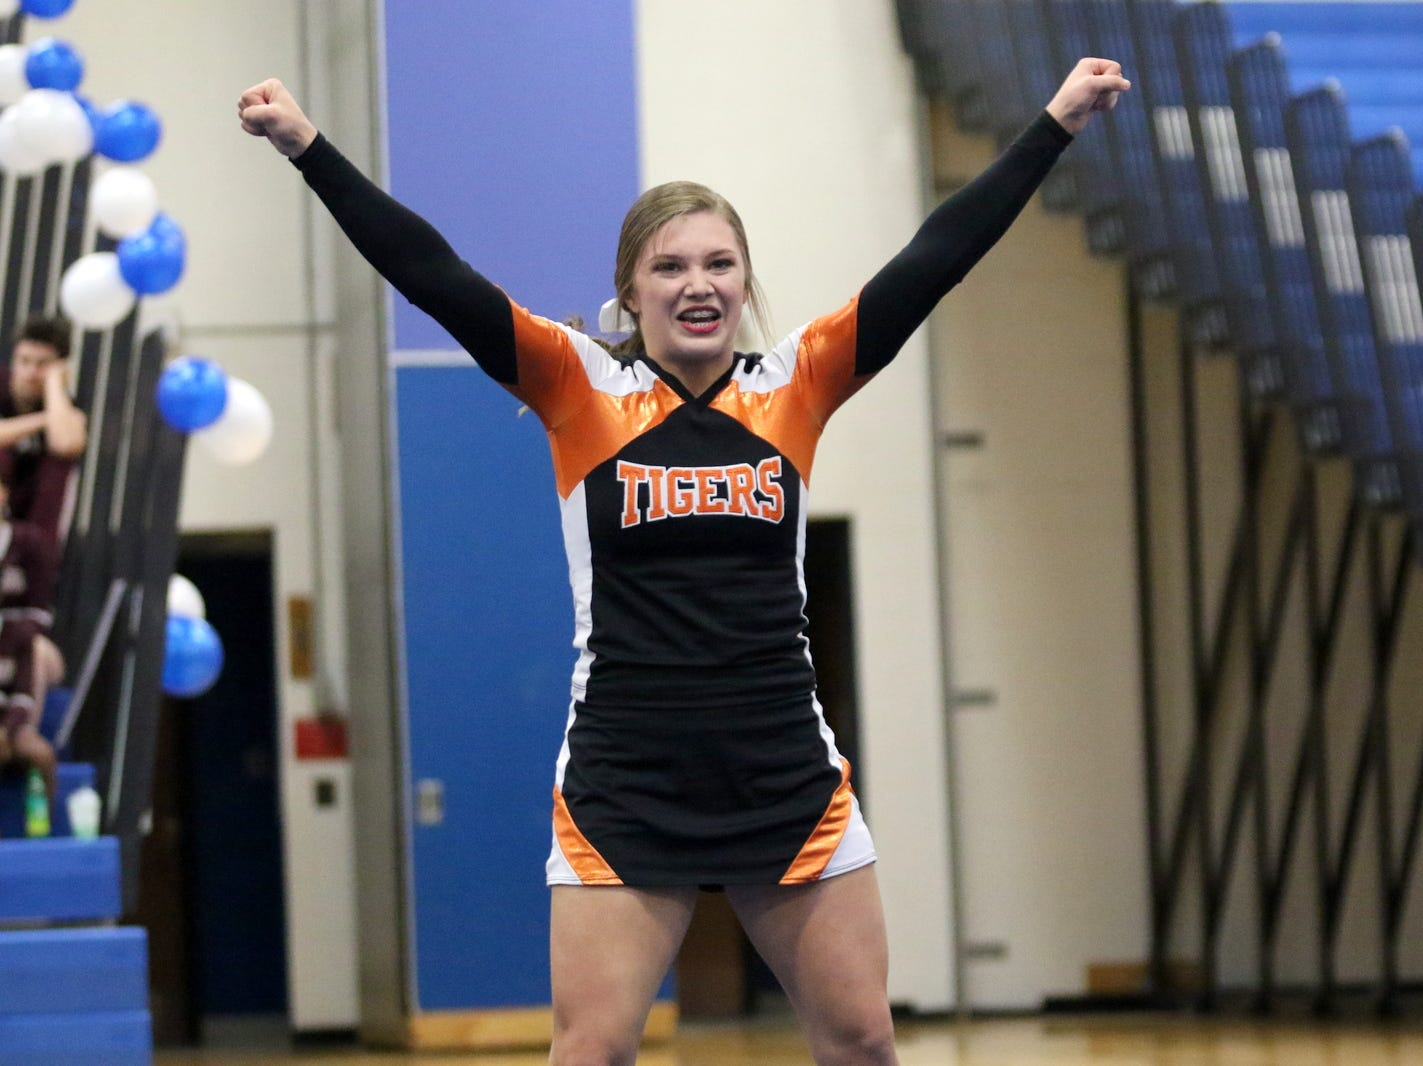 Union-Endicott varsity cheerleaders compete at the STAC Winter Cheer Championships on Feb. 16, 2019 at Horseheads Middle School.